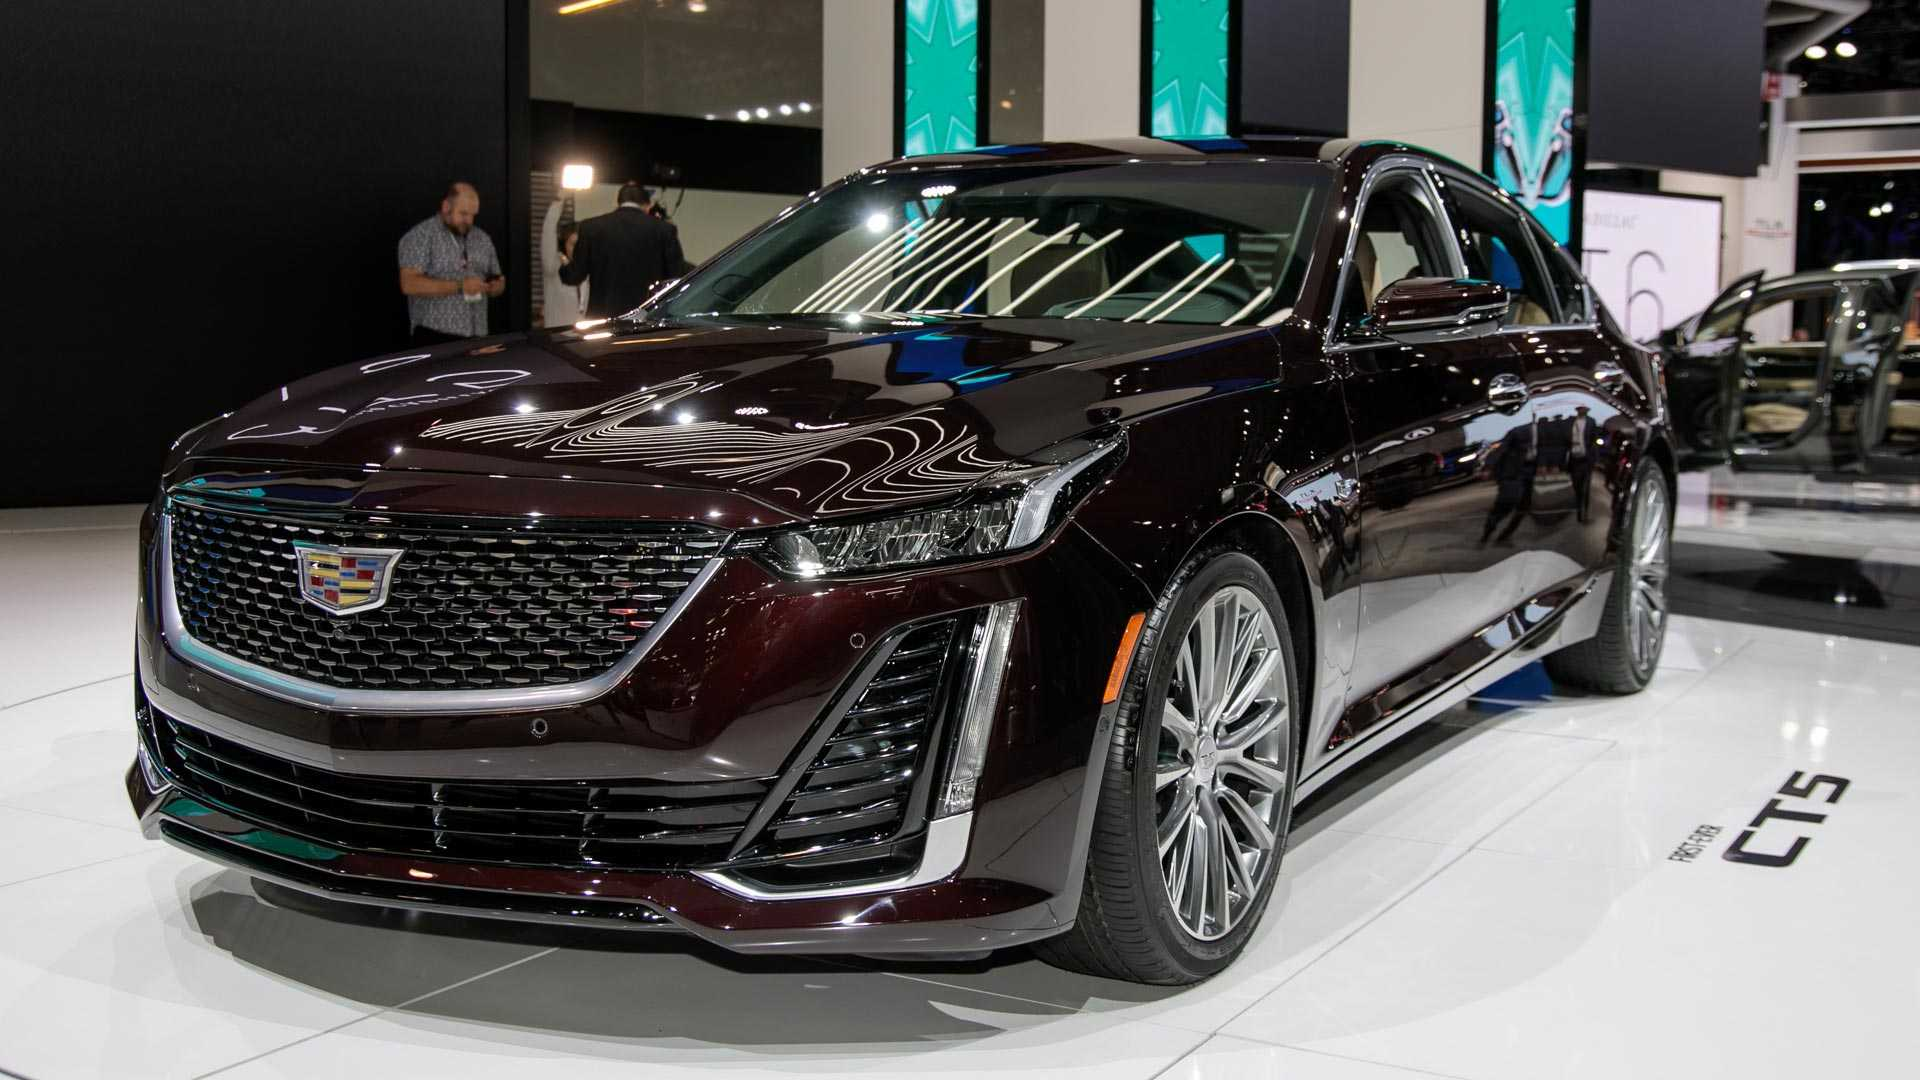 55 A Photos Of 2020 Cadillac Ct5 Redesign And Review